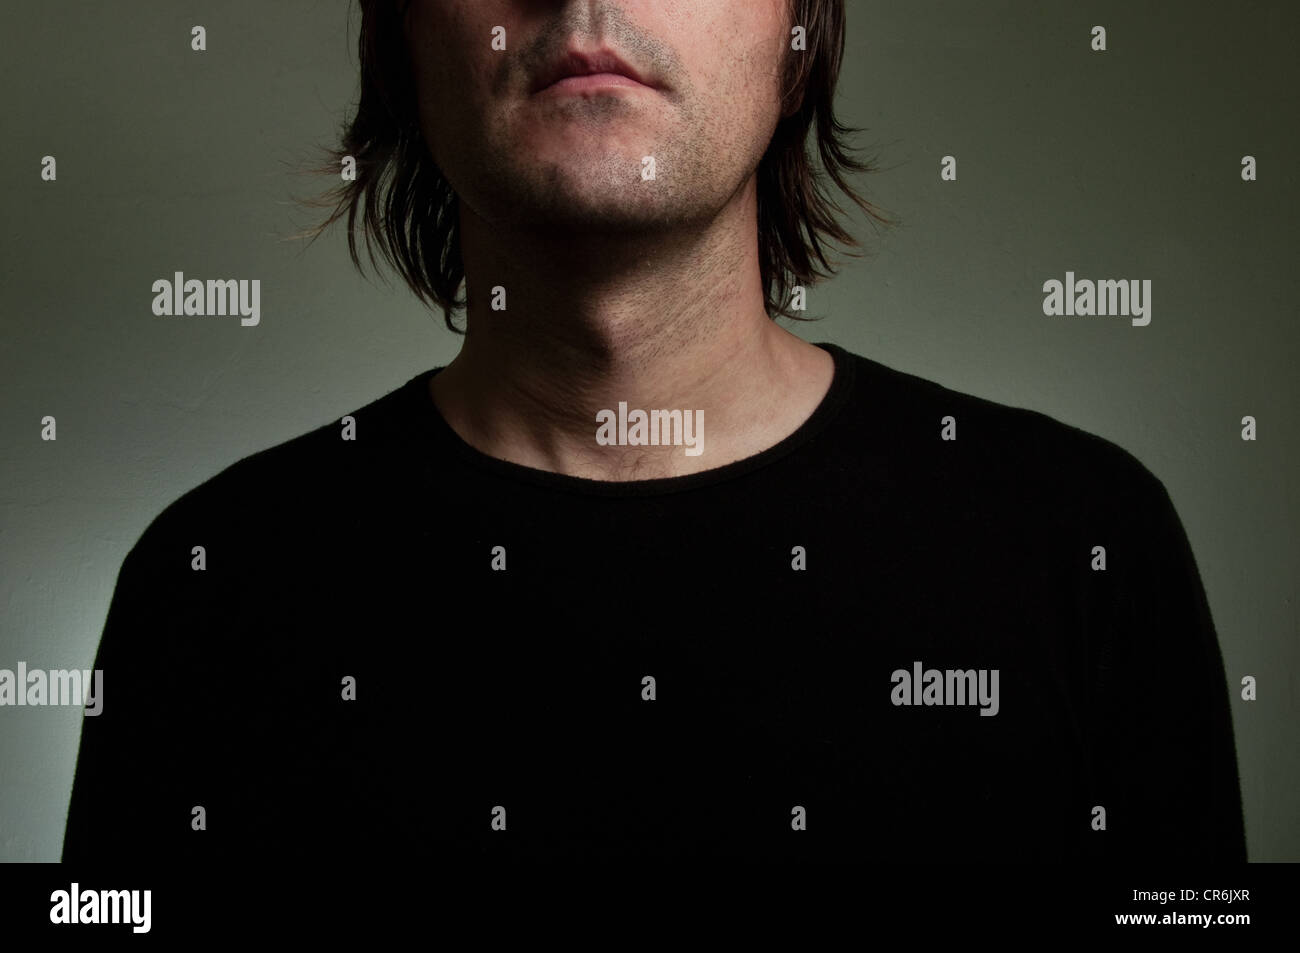 Man wearing a black shirt with 'Insecurity' title on his chest. Shyness, insecurity, solitude concept image. - Stock Image